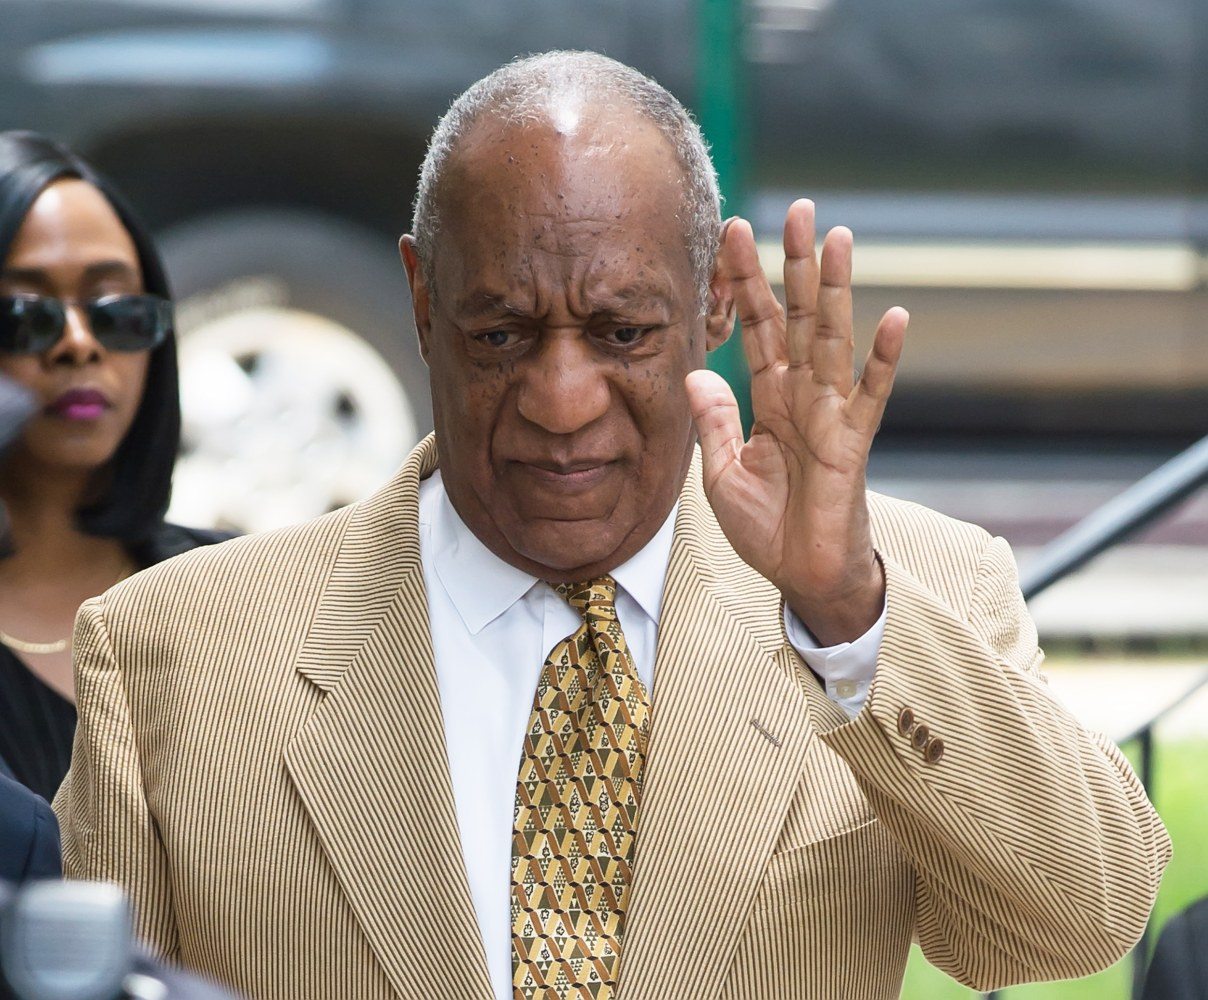 Key pretrial ruling a two-edged sword for Cosby